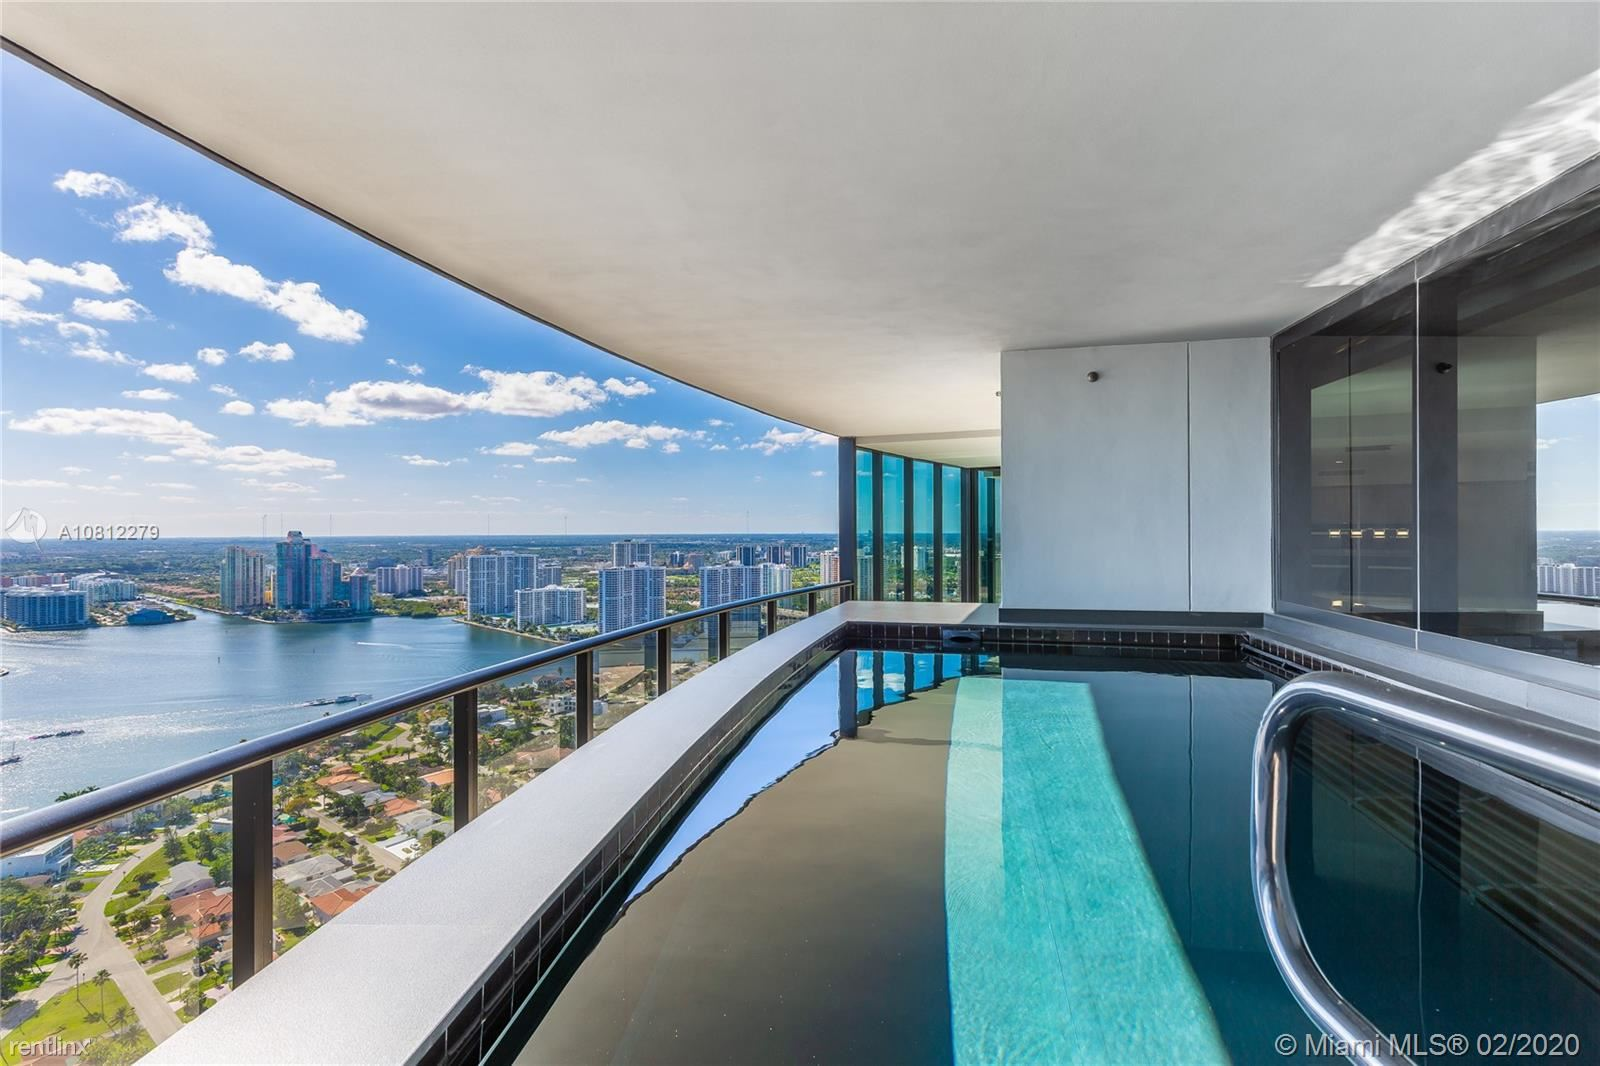 18555 Collins Ave, Sunny Isles Beach, FL - $14,999